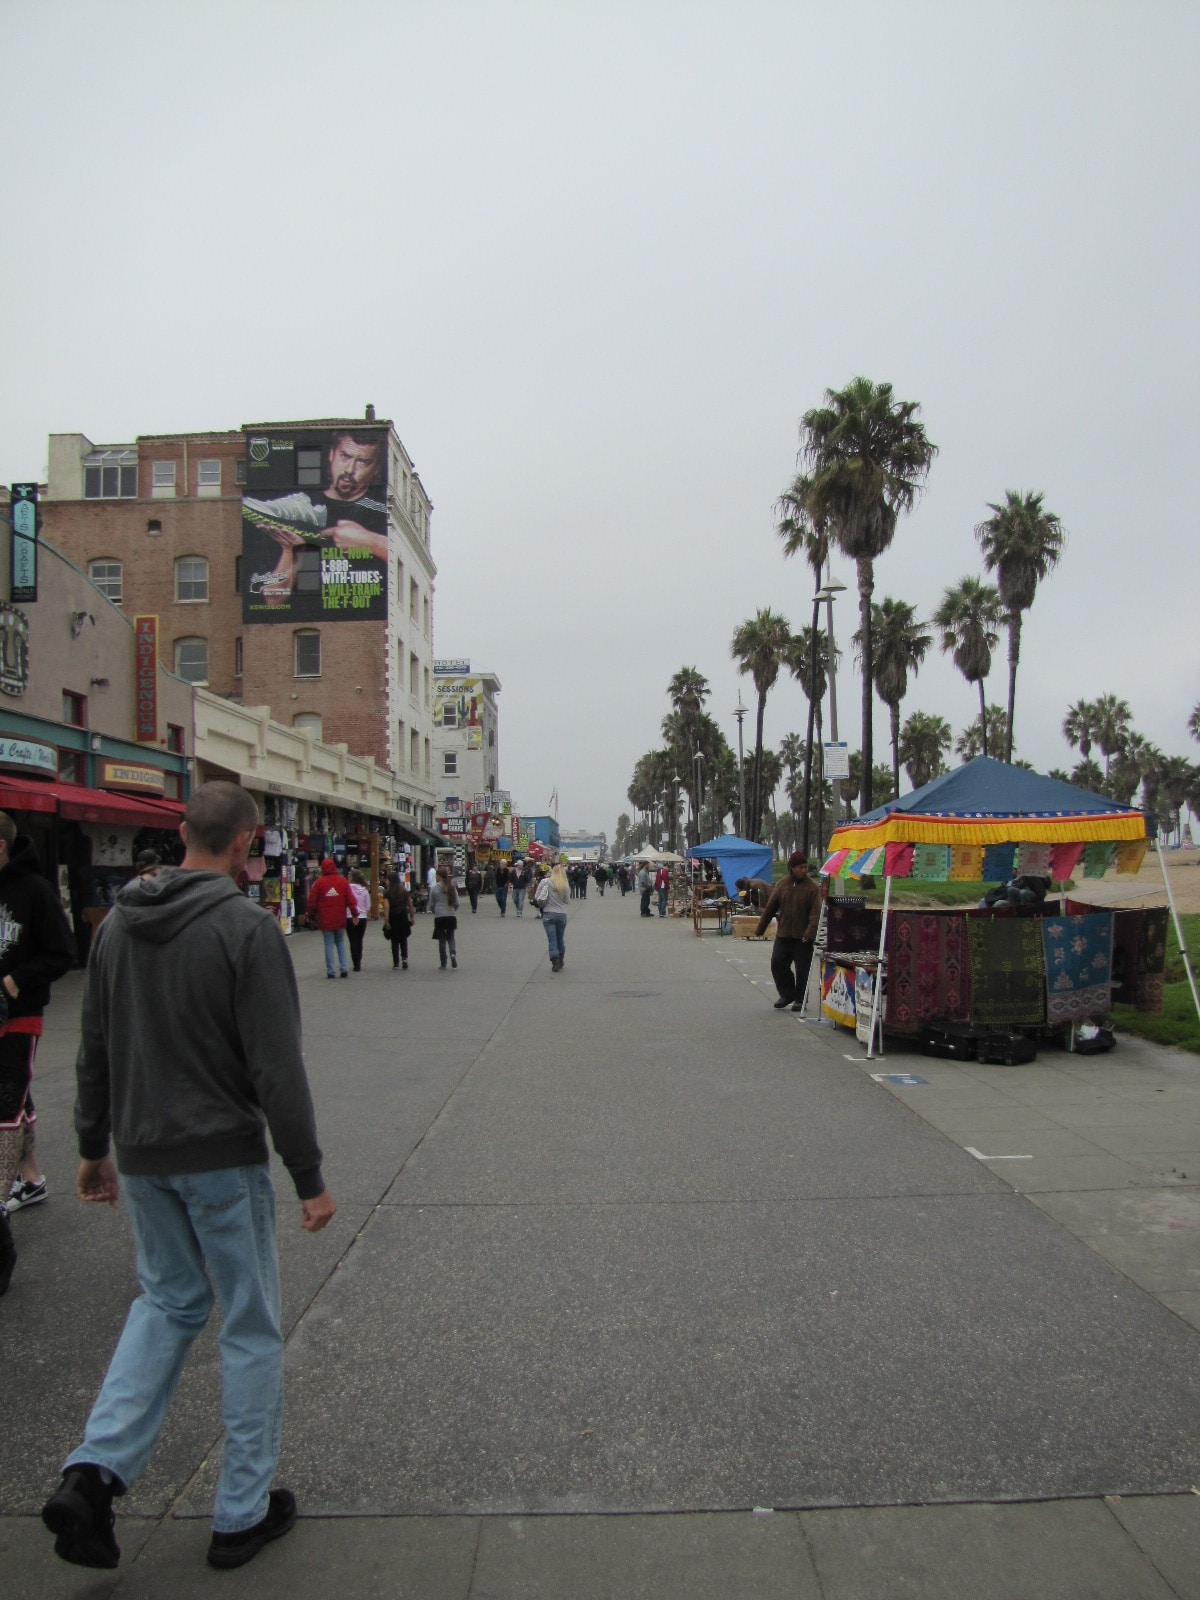 Venice beach front view